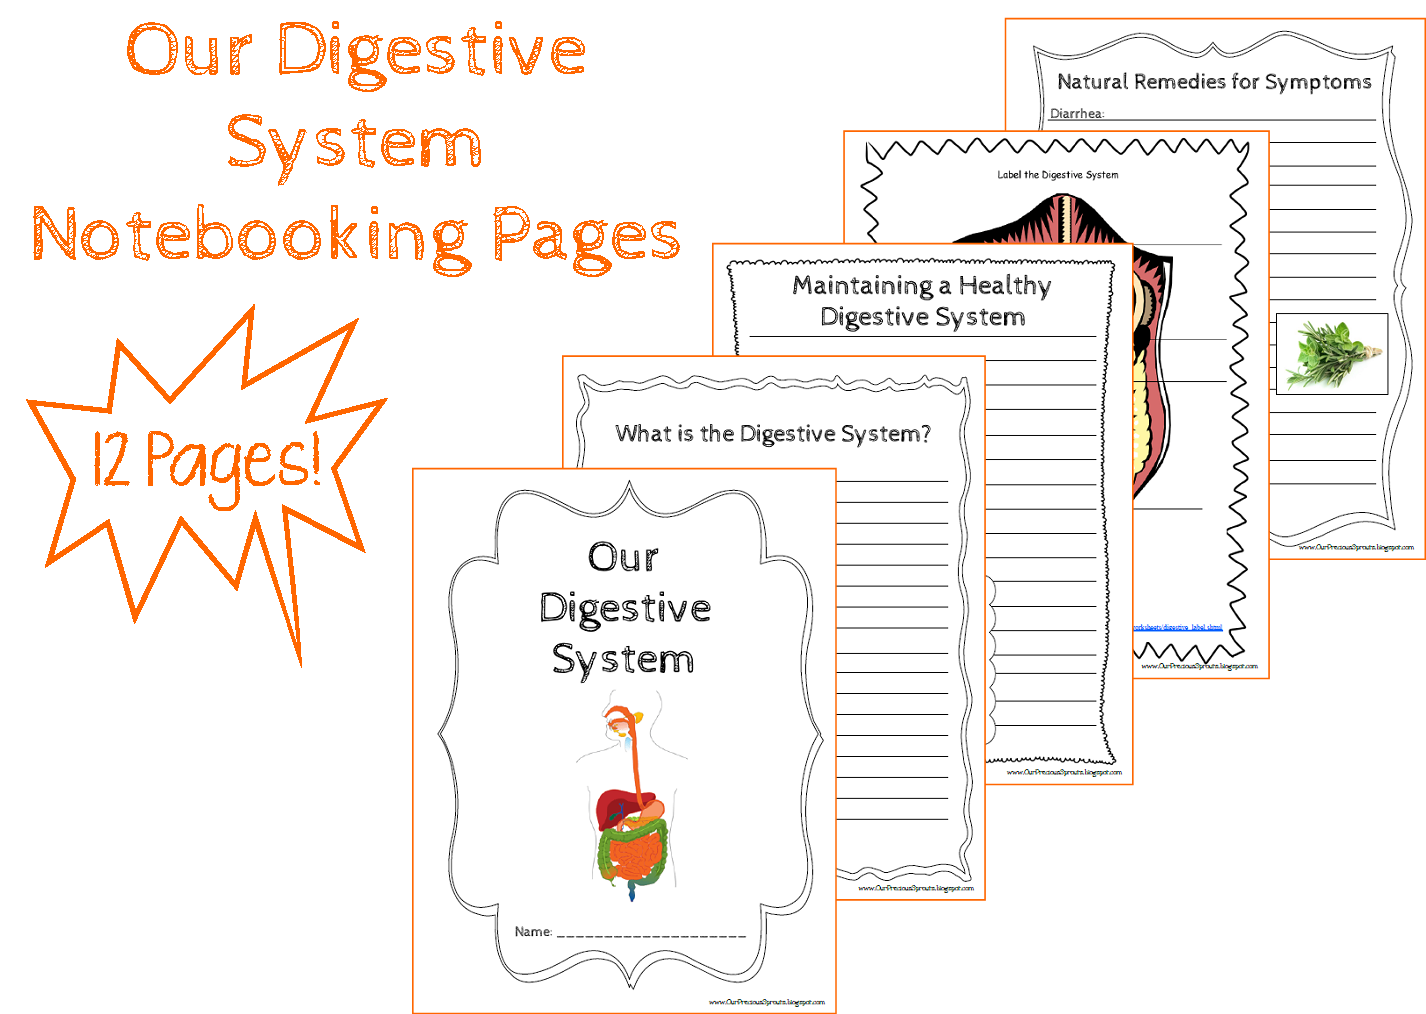 Free Digestive System Notebooking Pages And Free Online